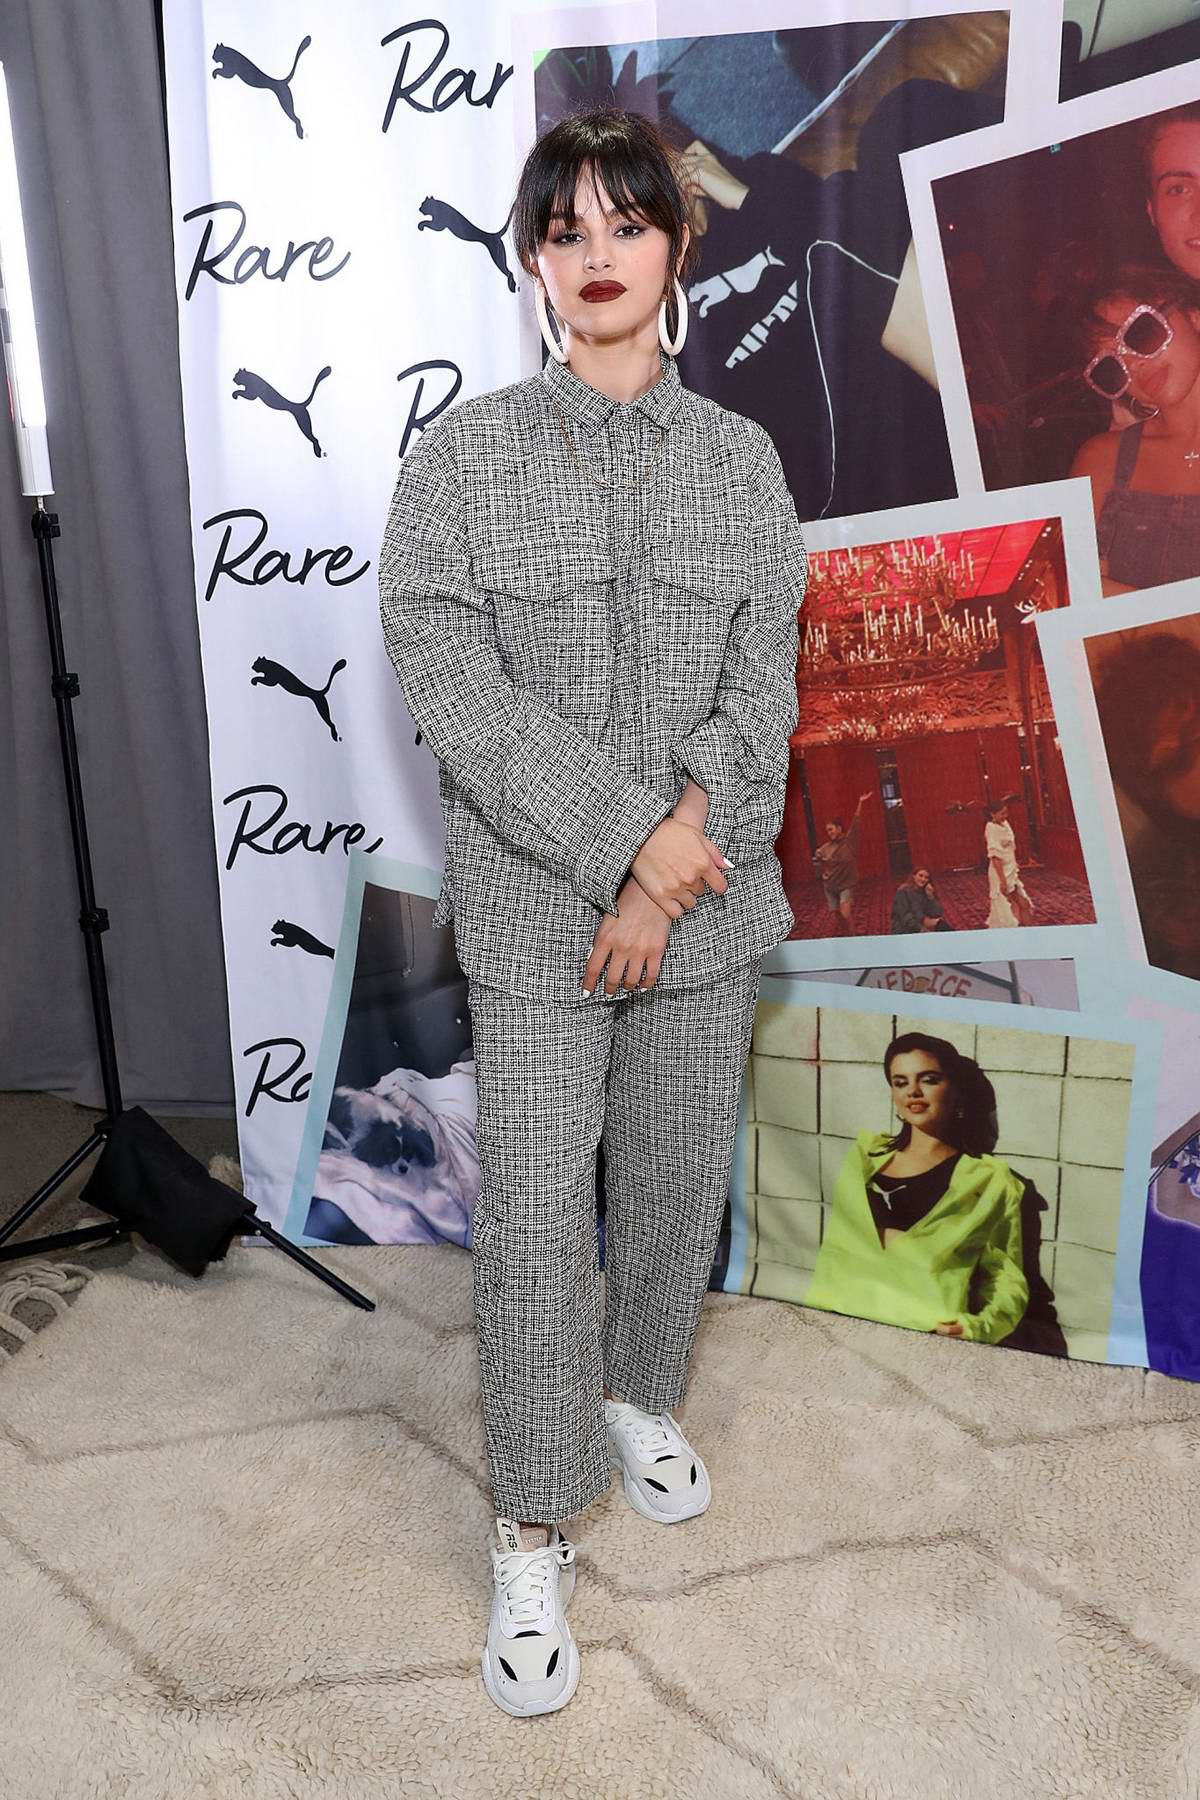 Selena Gomez attends a Fan Meet and Greet at the Puma flagship store in New York City